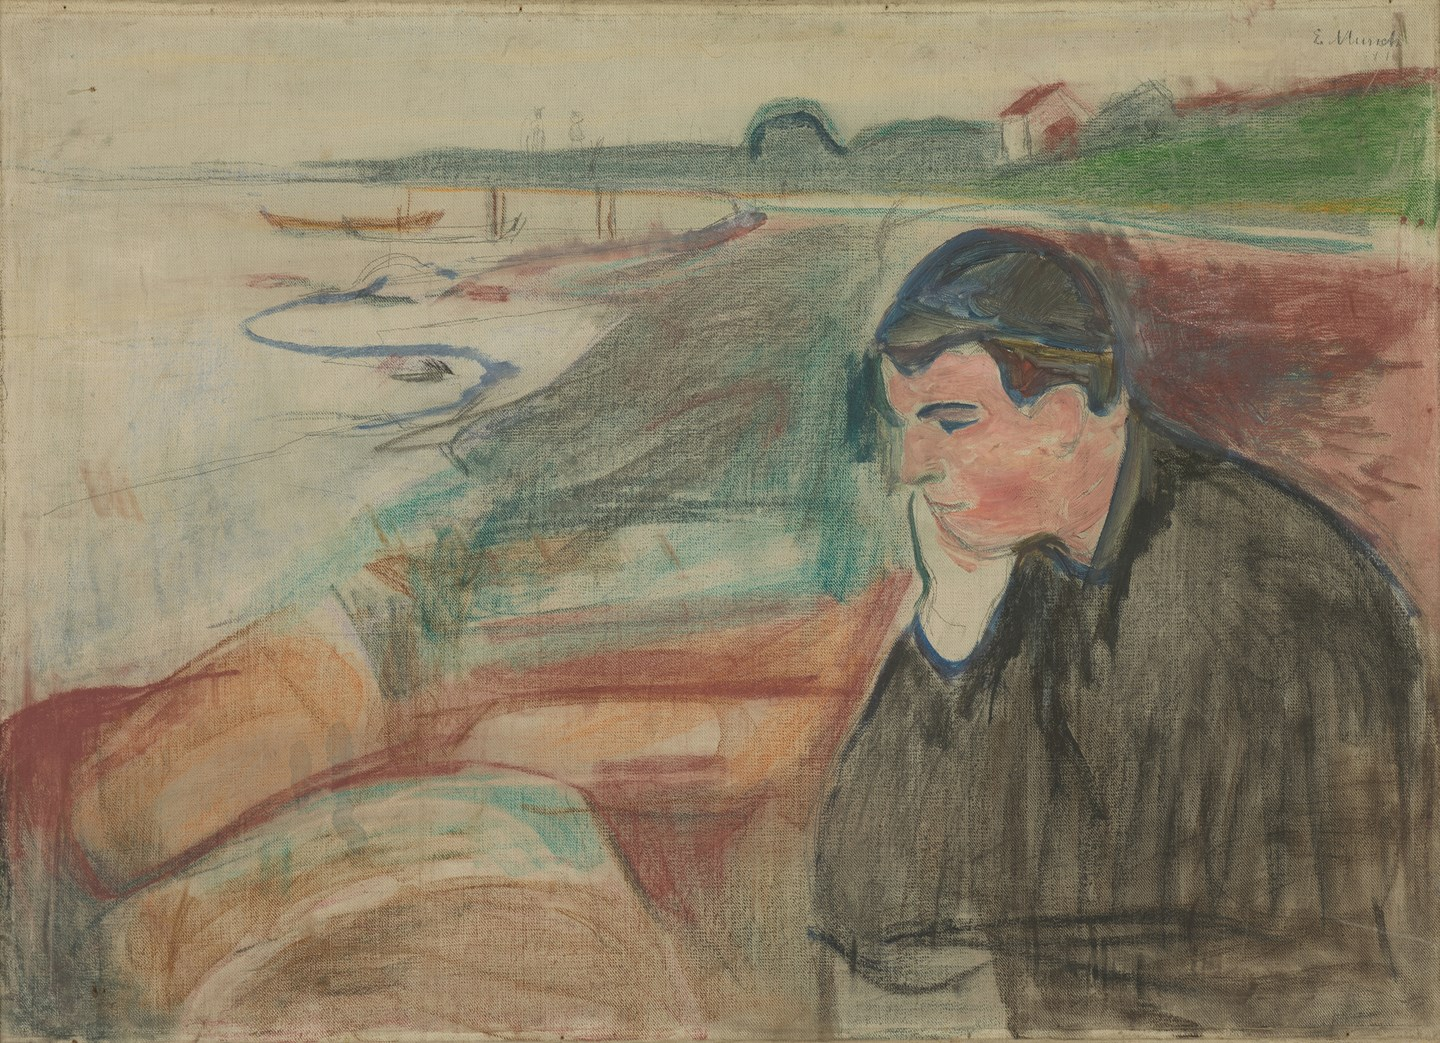 Edvard Munch: Evening. Melancholy. Oil, pencil and color pen on canvas, 1891. Photo © Munchmuseet